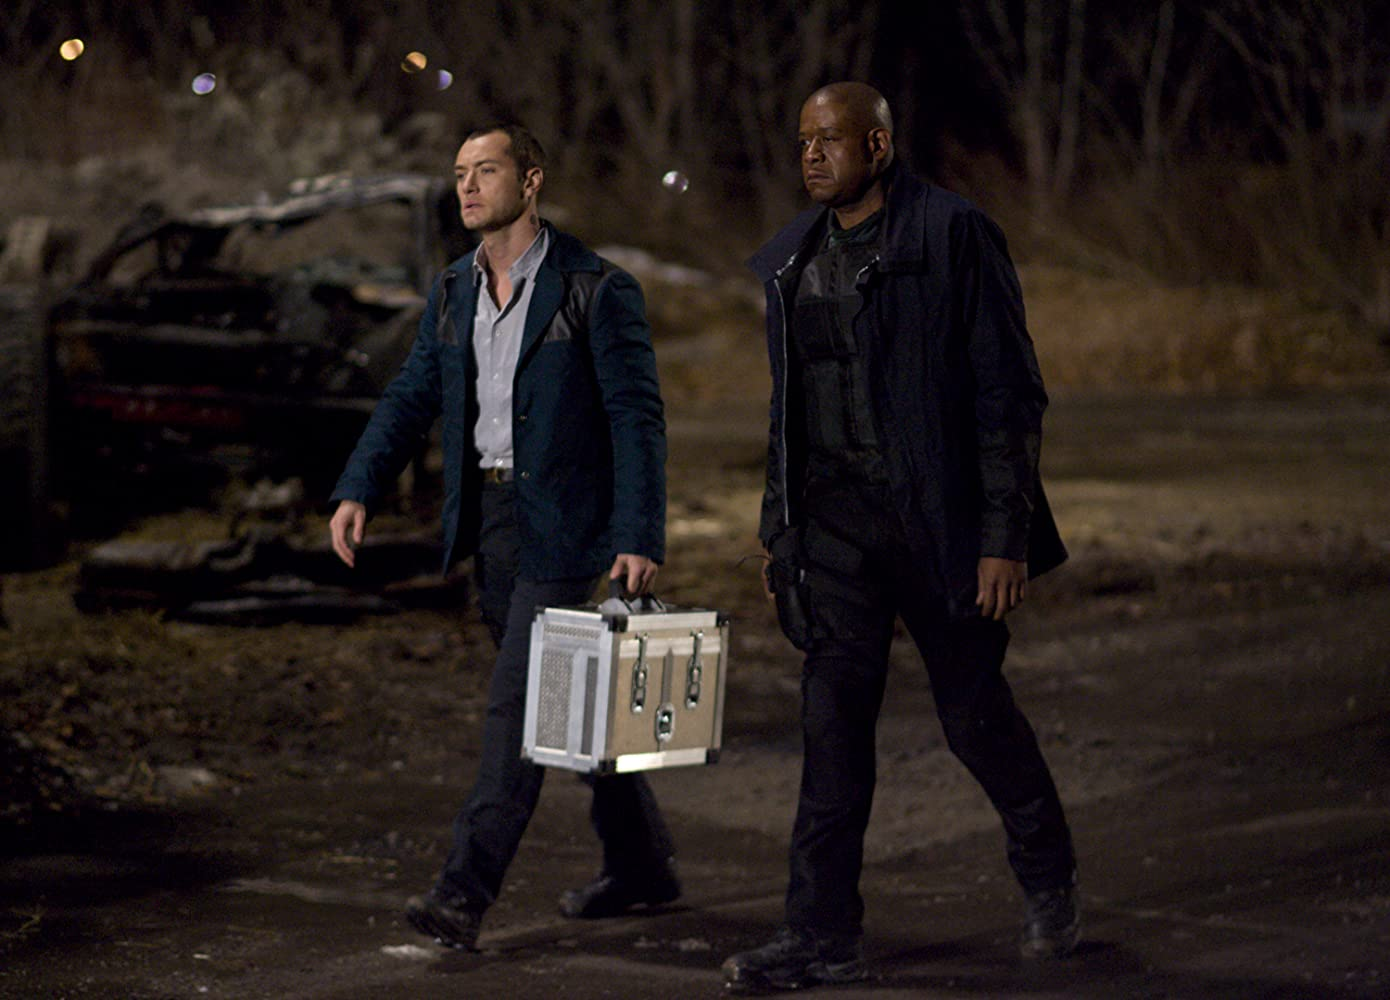 Jude Law and Forest Whitaker in Repo Men (2010)